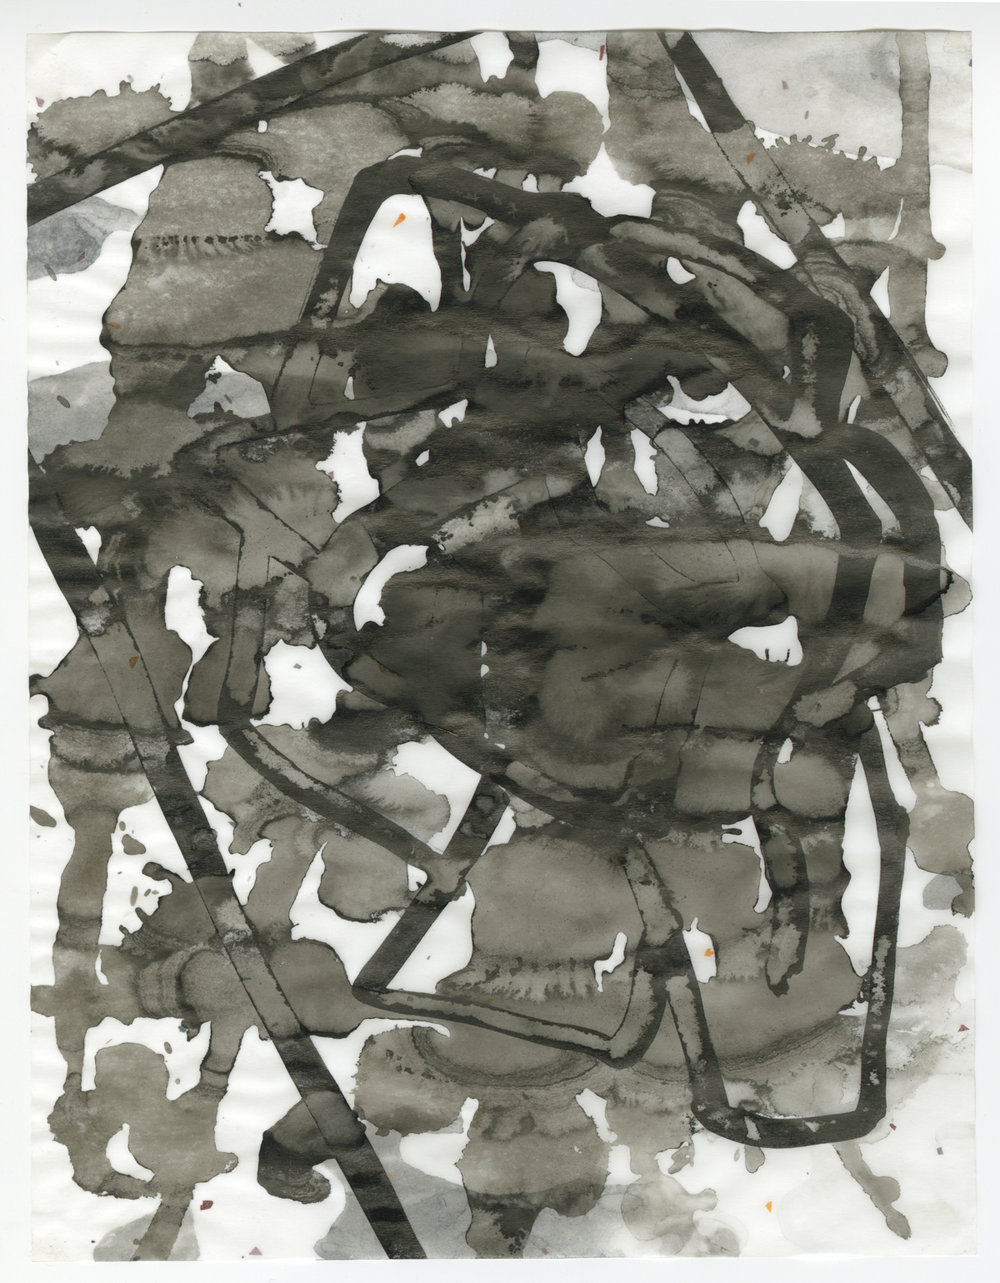 Untitled, ink on vellum, 2013, 11 x 8 ½ inches